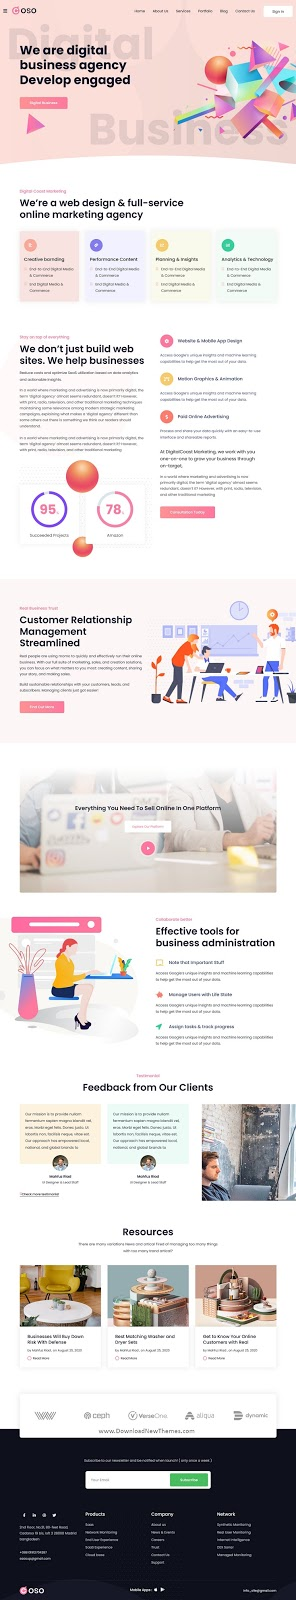 Best Creative Agency Website Template